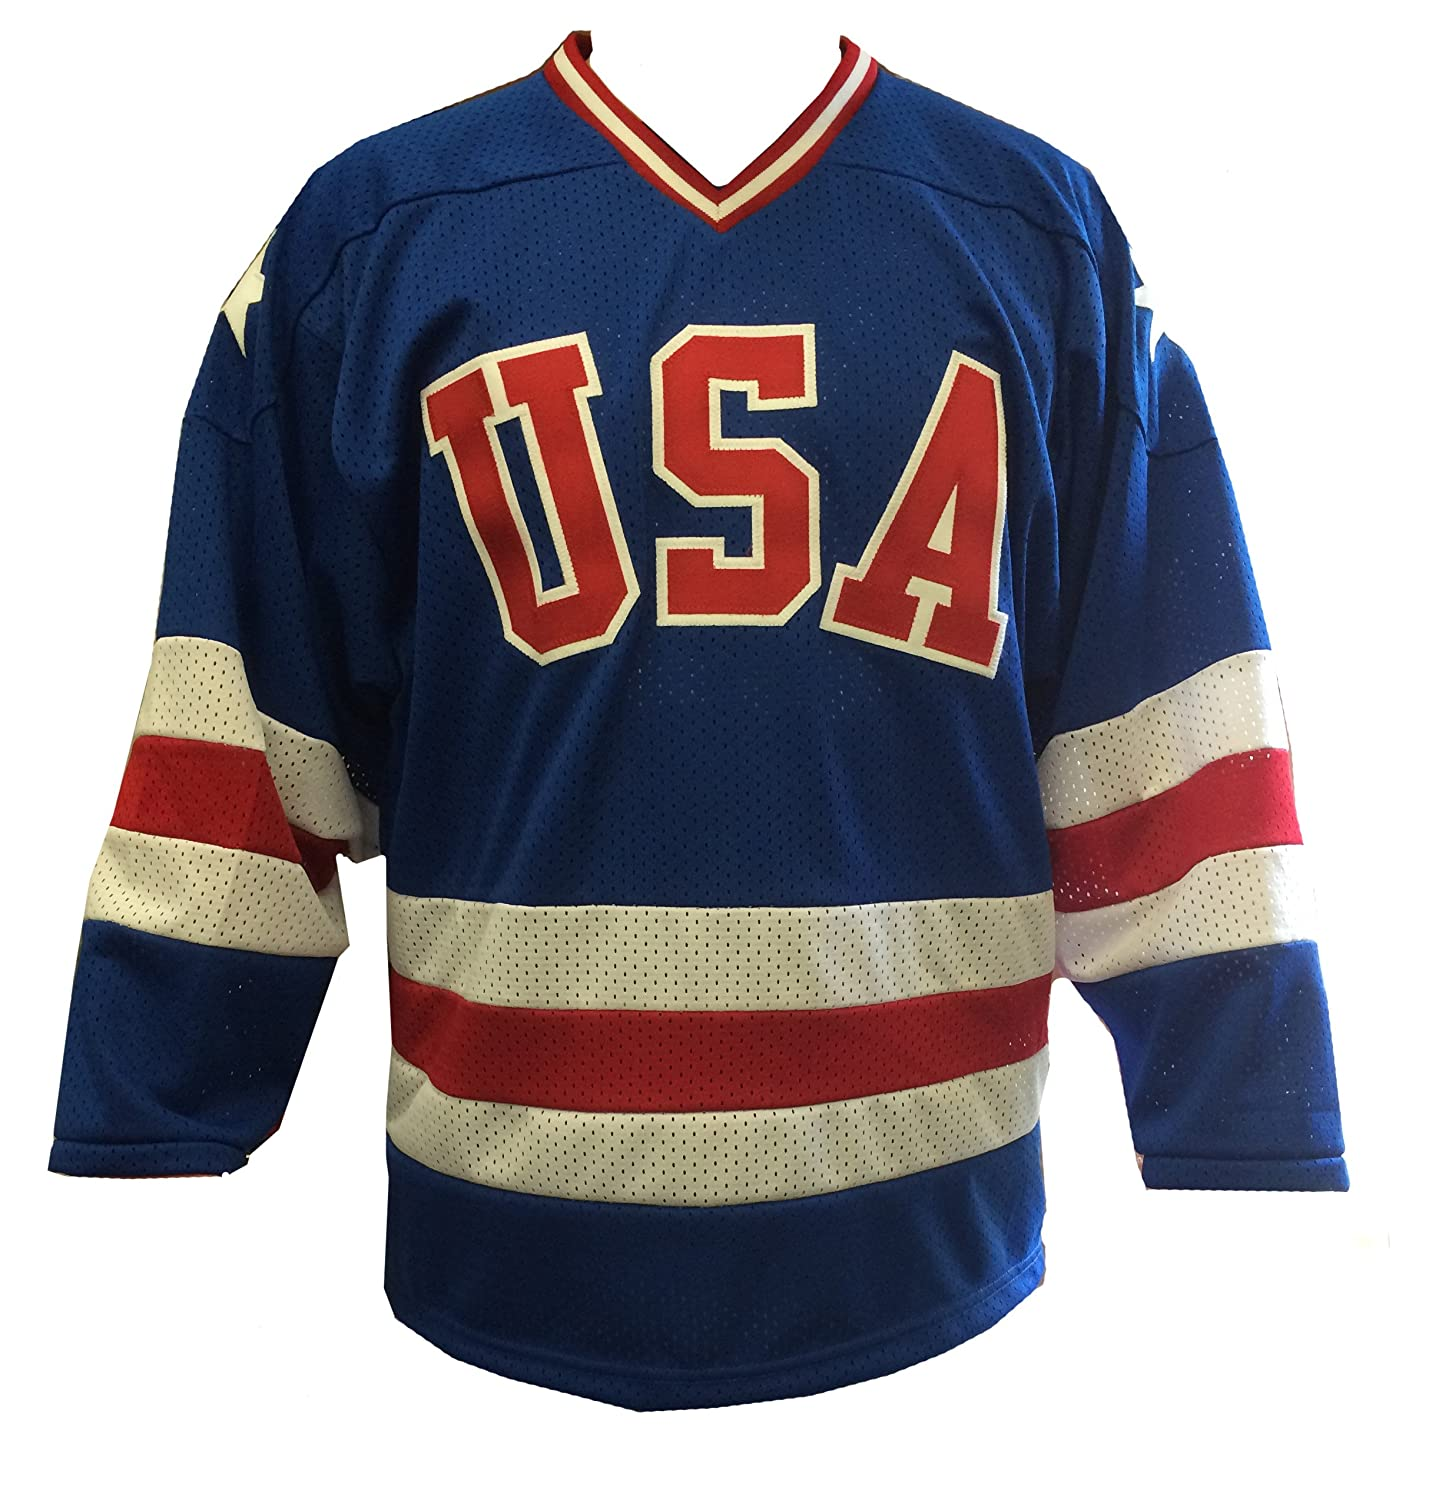 Blue Away 1980 USA Olympic Hockey Replica Game Mesh Jersey...